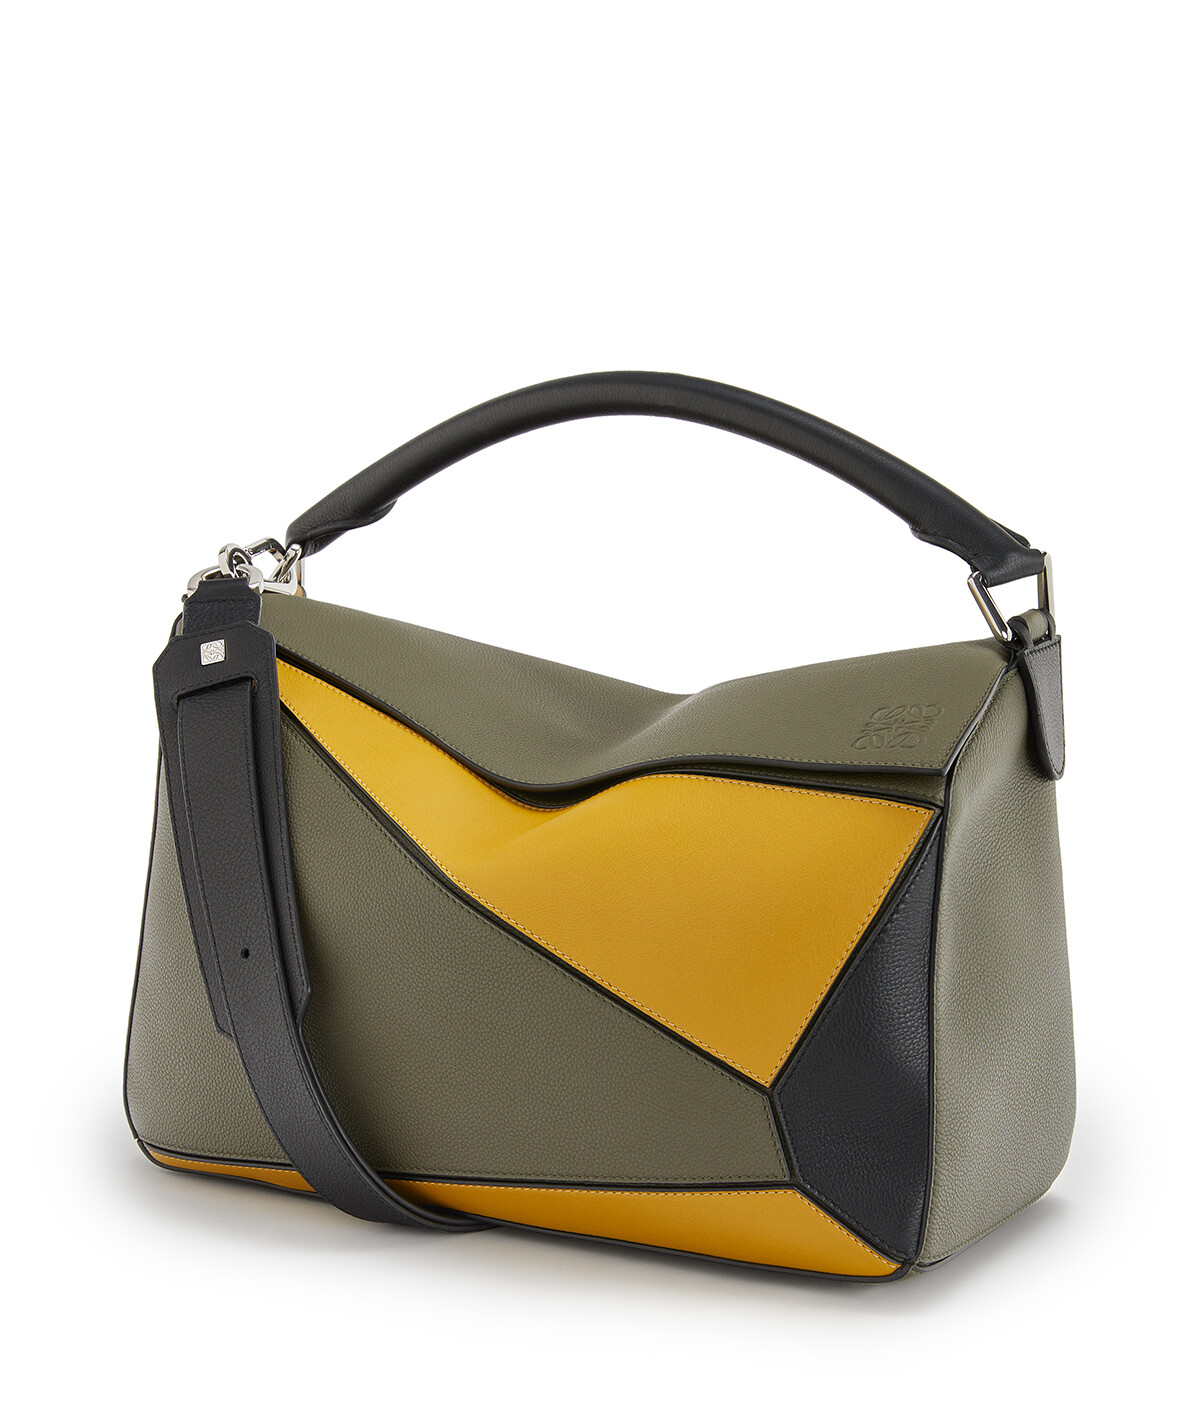 LOEWE Puzzle Large Bag Khaki Green/Ochre front